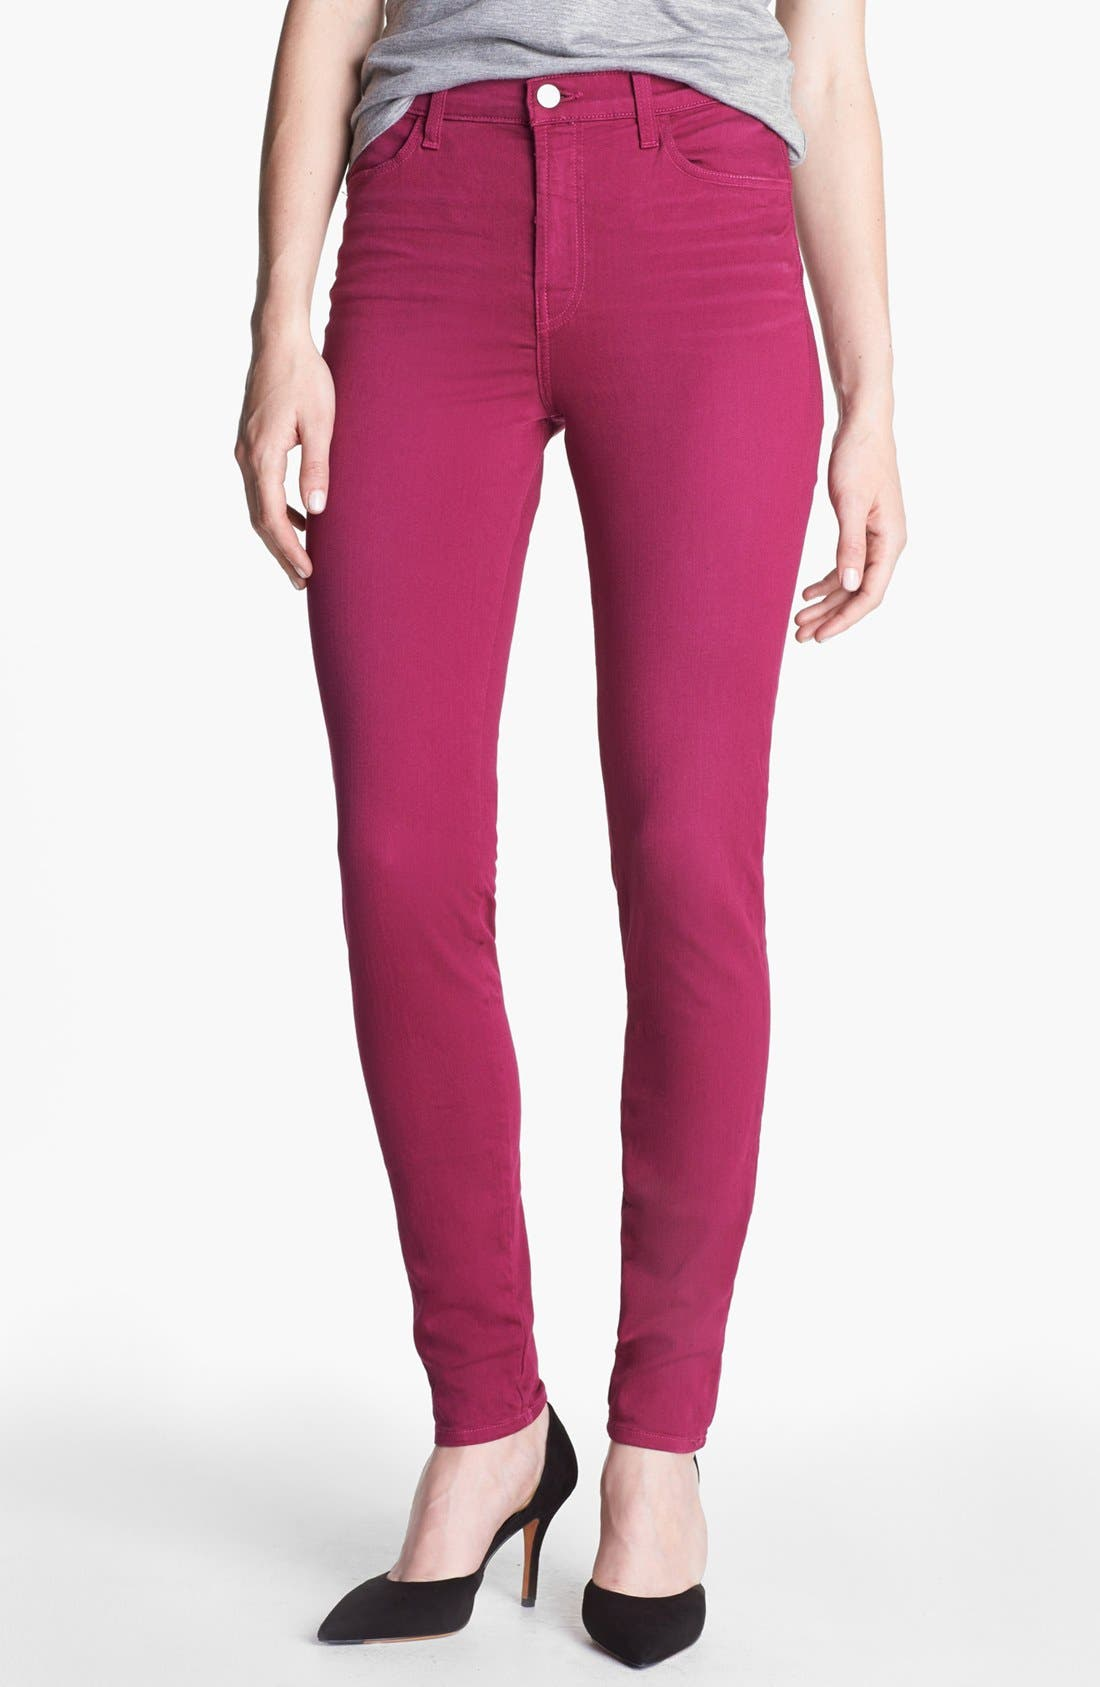 Alternate Image 1 Selected - J Brand 'Maria' High Waist Skinny Stretch Jeans (Washed Loganberry)